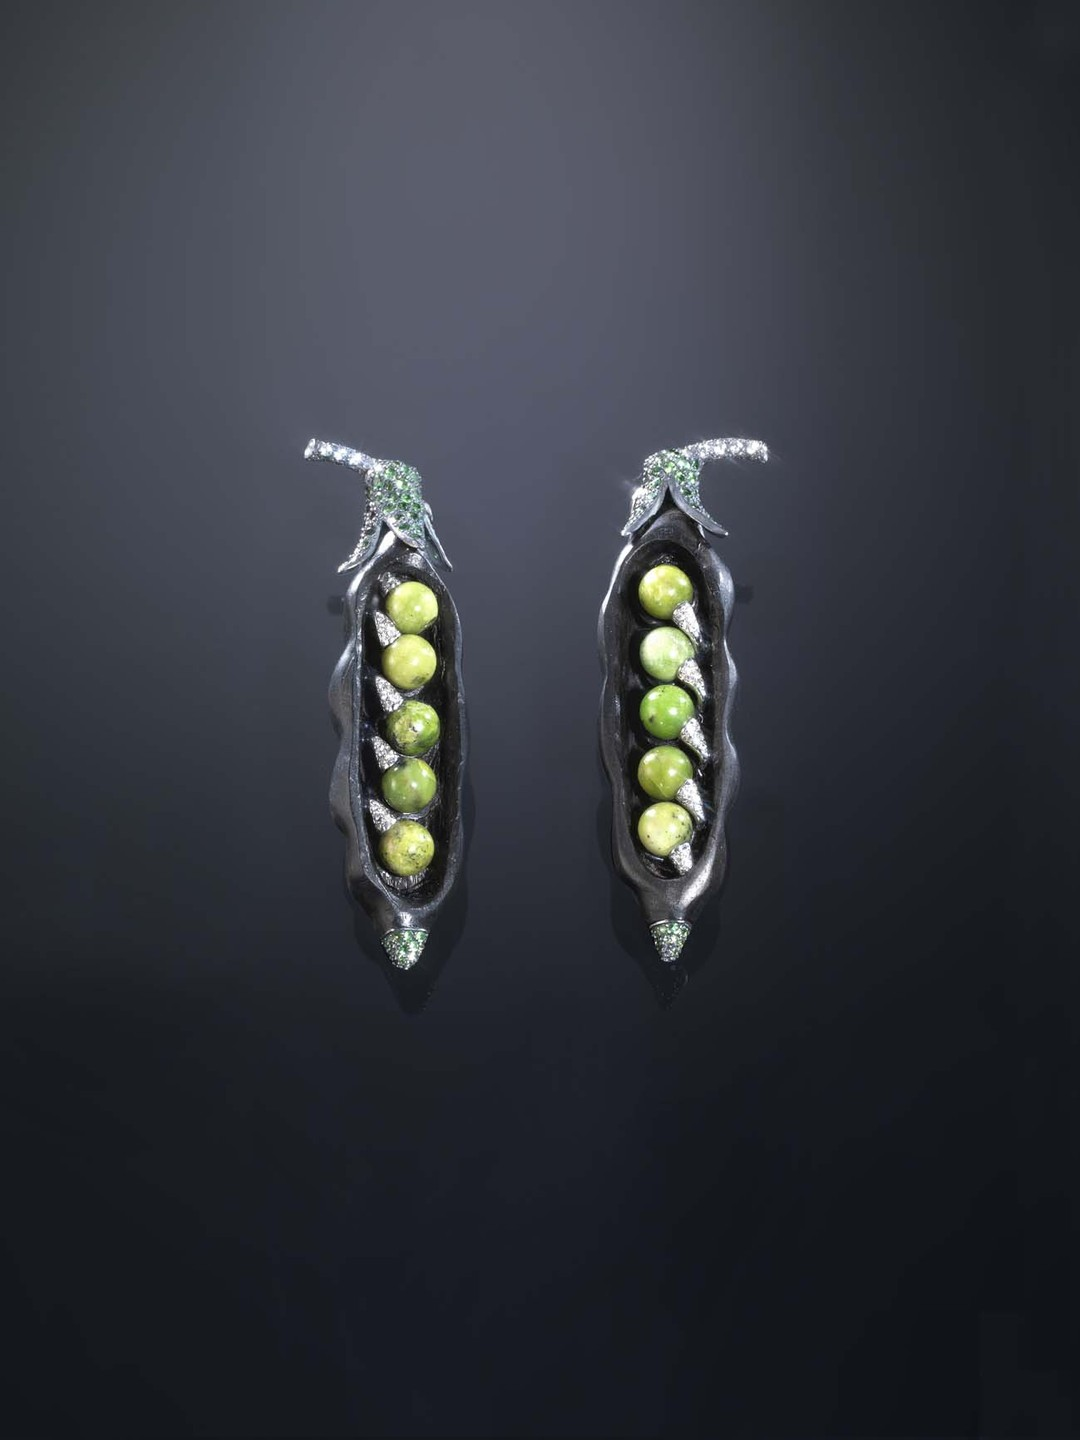 One-of-a-kind Luz Camino Peas in a Pod earrings in an ebony cocoon with turquoise, tsavorites, diamonds, silver and gold.